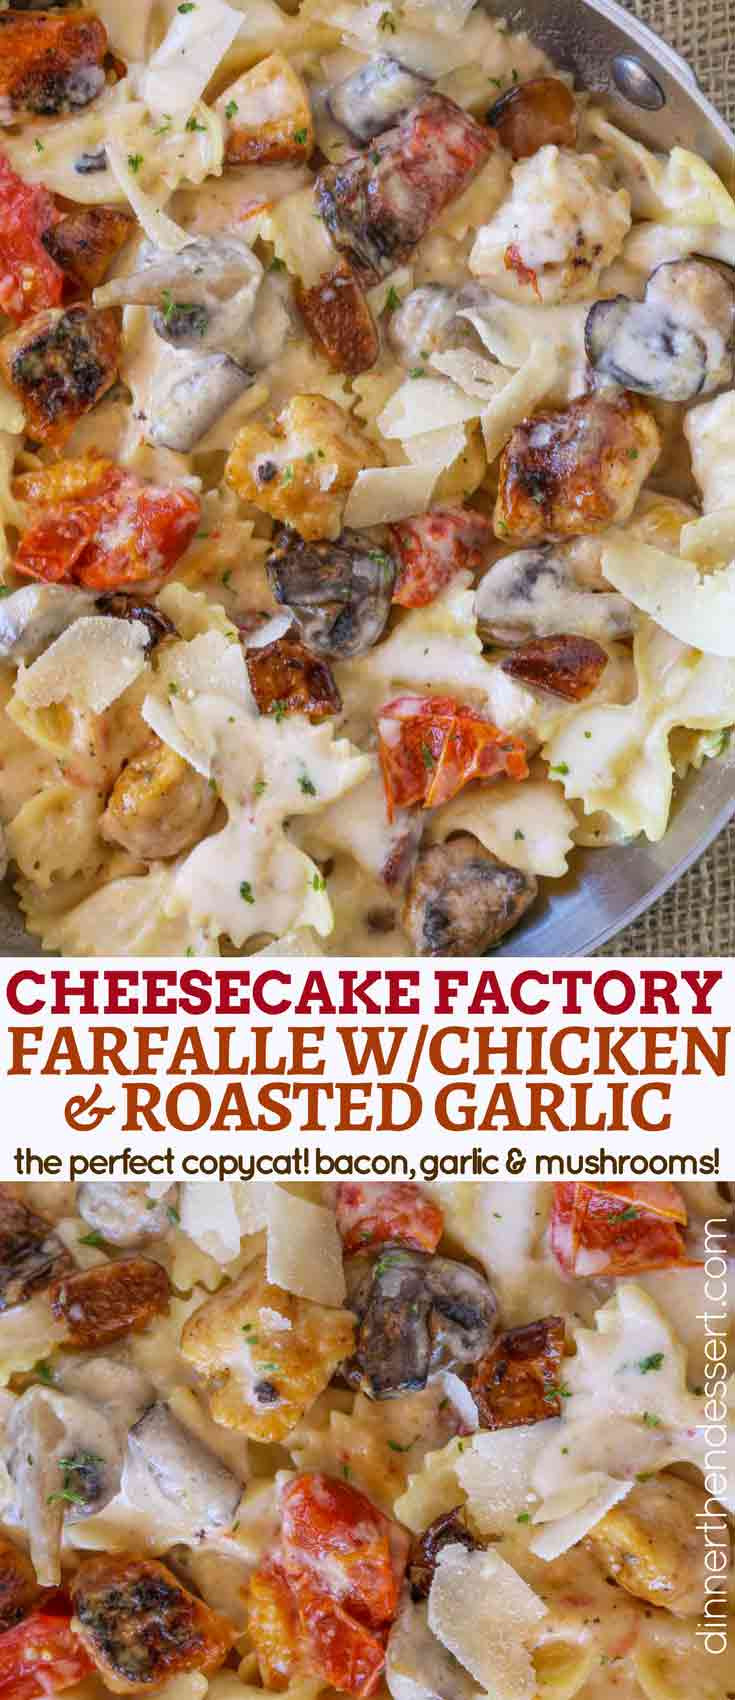 Cheesecake Factory Farfalle With Chicken And Roasted Garlic  The Cheesecake Factory Farfalle with Chicken and Roasted